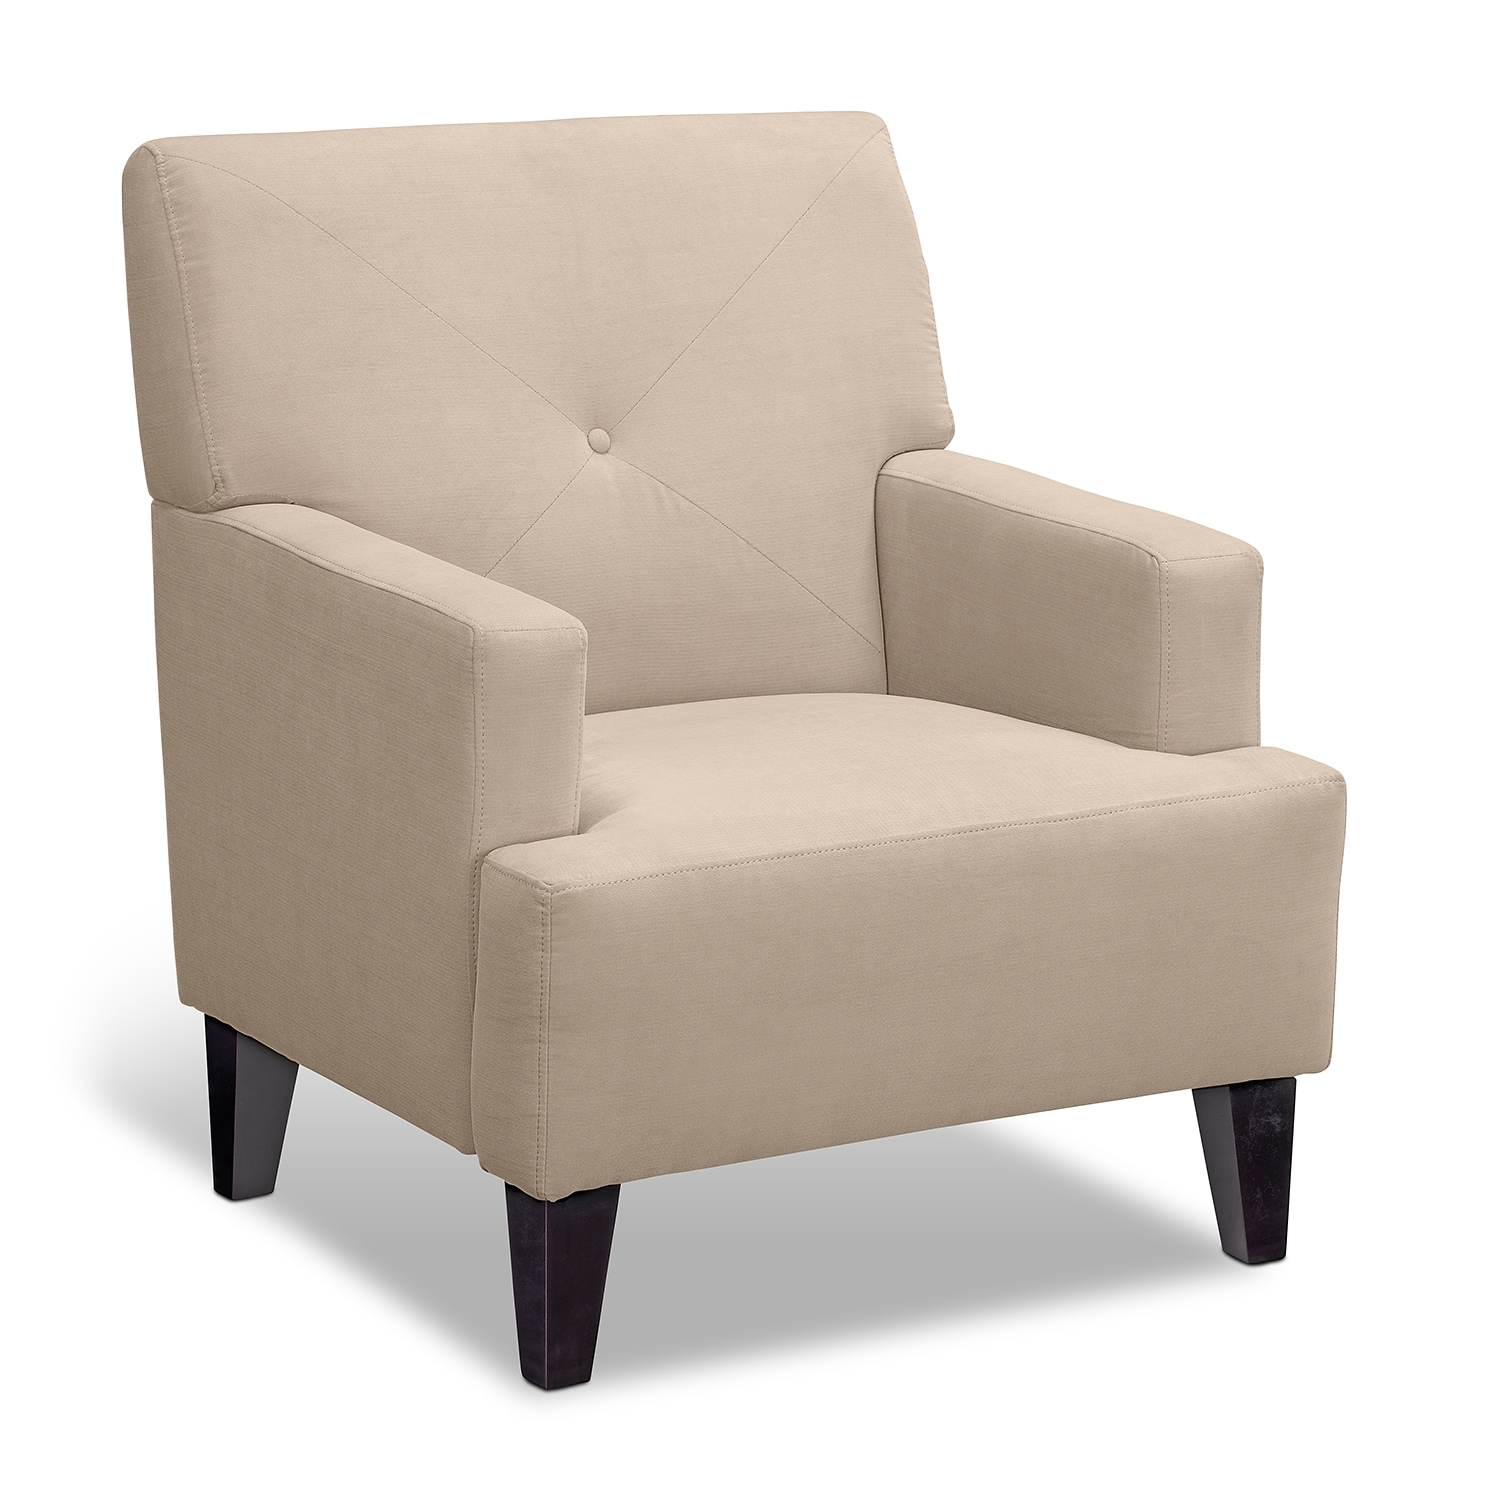 value city furniture accent chairs target folding and tables coming soon valuecity